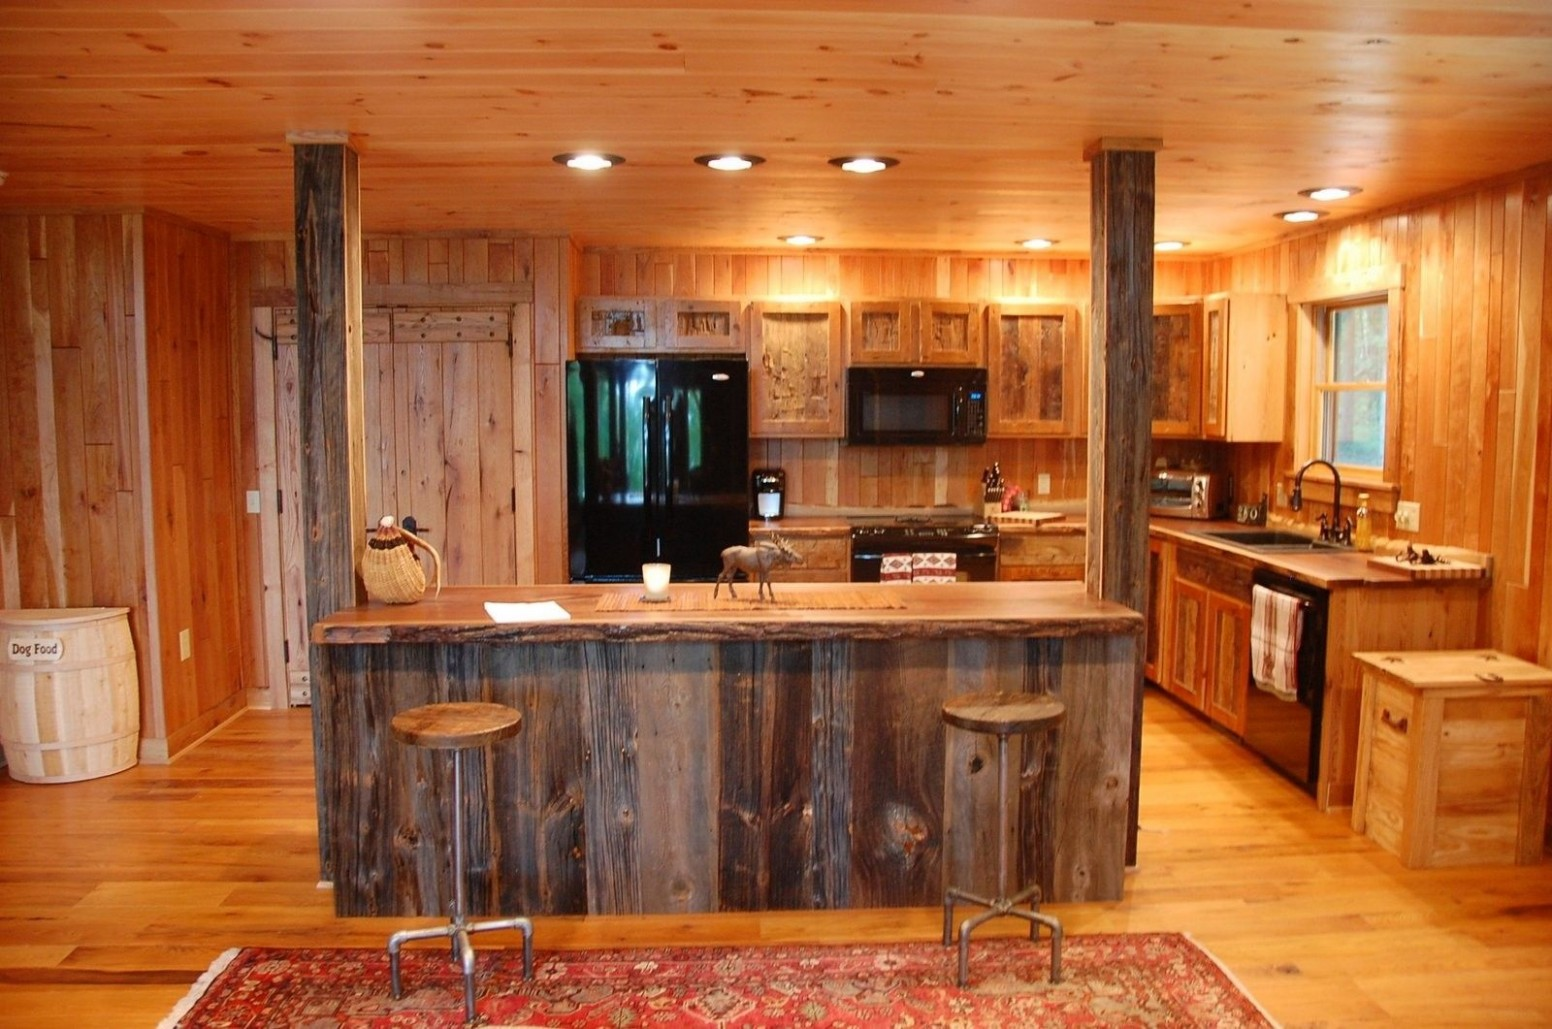 Custom Made Reclaimed Wood Rustic Kitchen Cabinets by Corey Morgan  - Adirondack Kitchen Cabinets